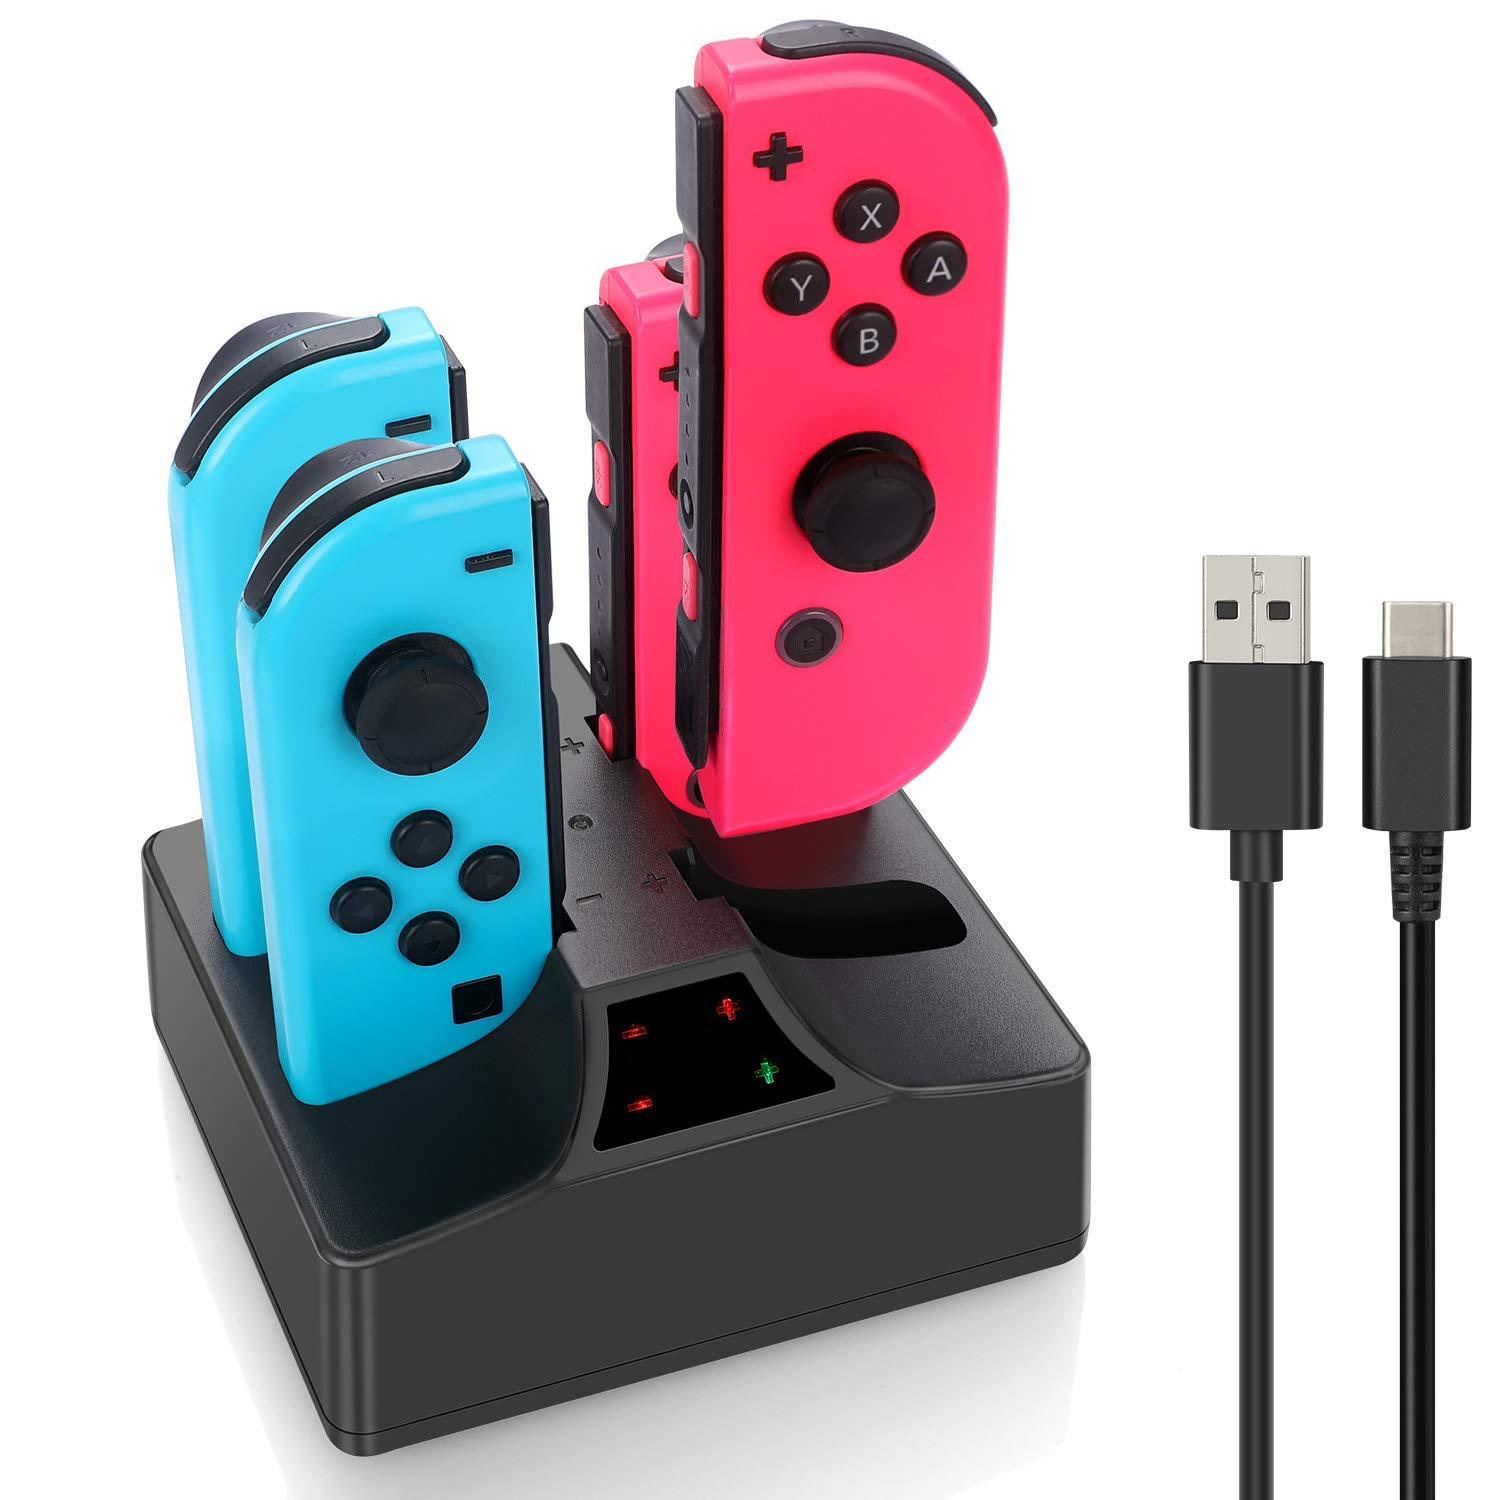 YCCSKY Switch Joy-Con Controller Charger Charging Dock 4 in 1 Joy con Charger Stand with Type C Cable for Nintendo Switch Joy-Cons